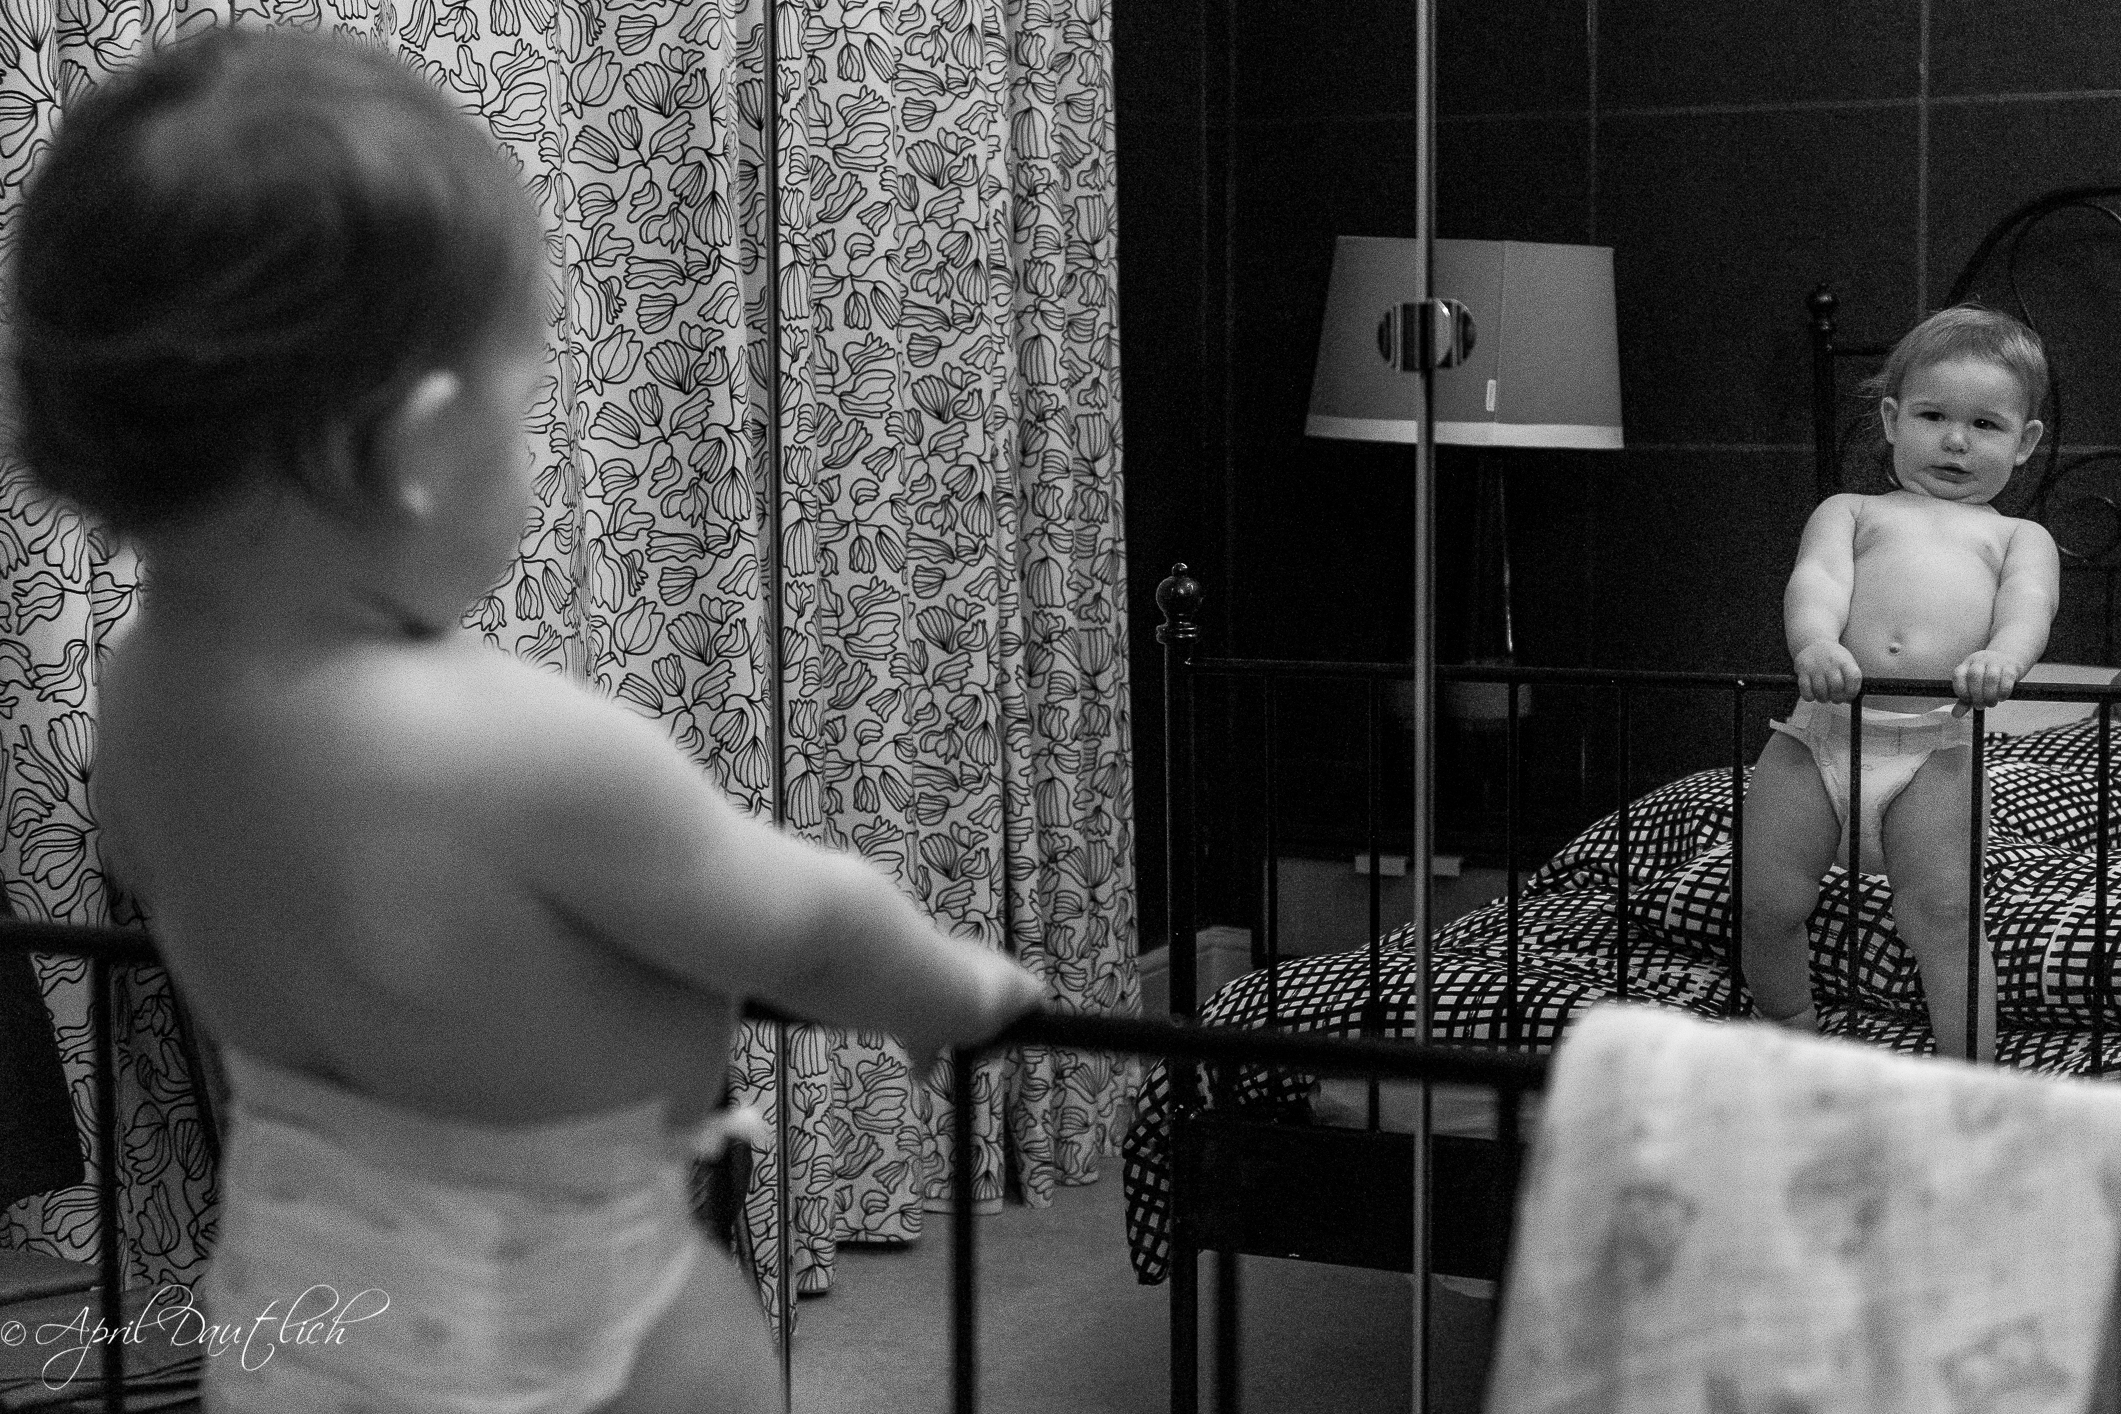 mirror play on bed10.20.17.jpg